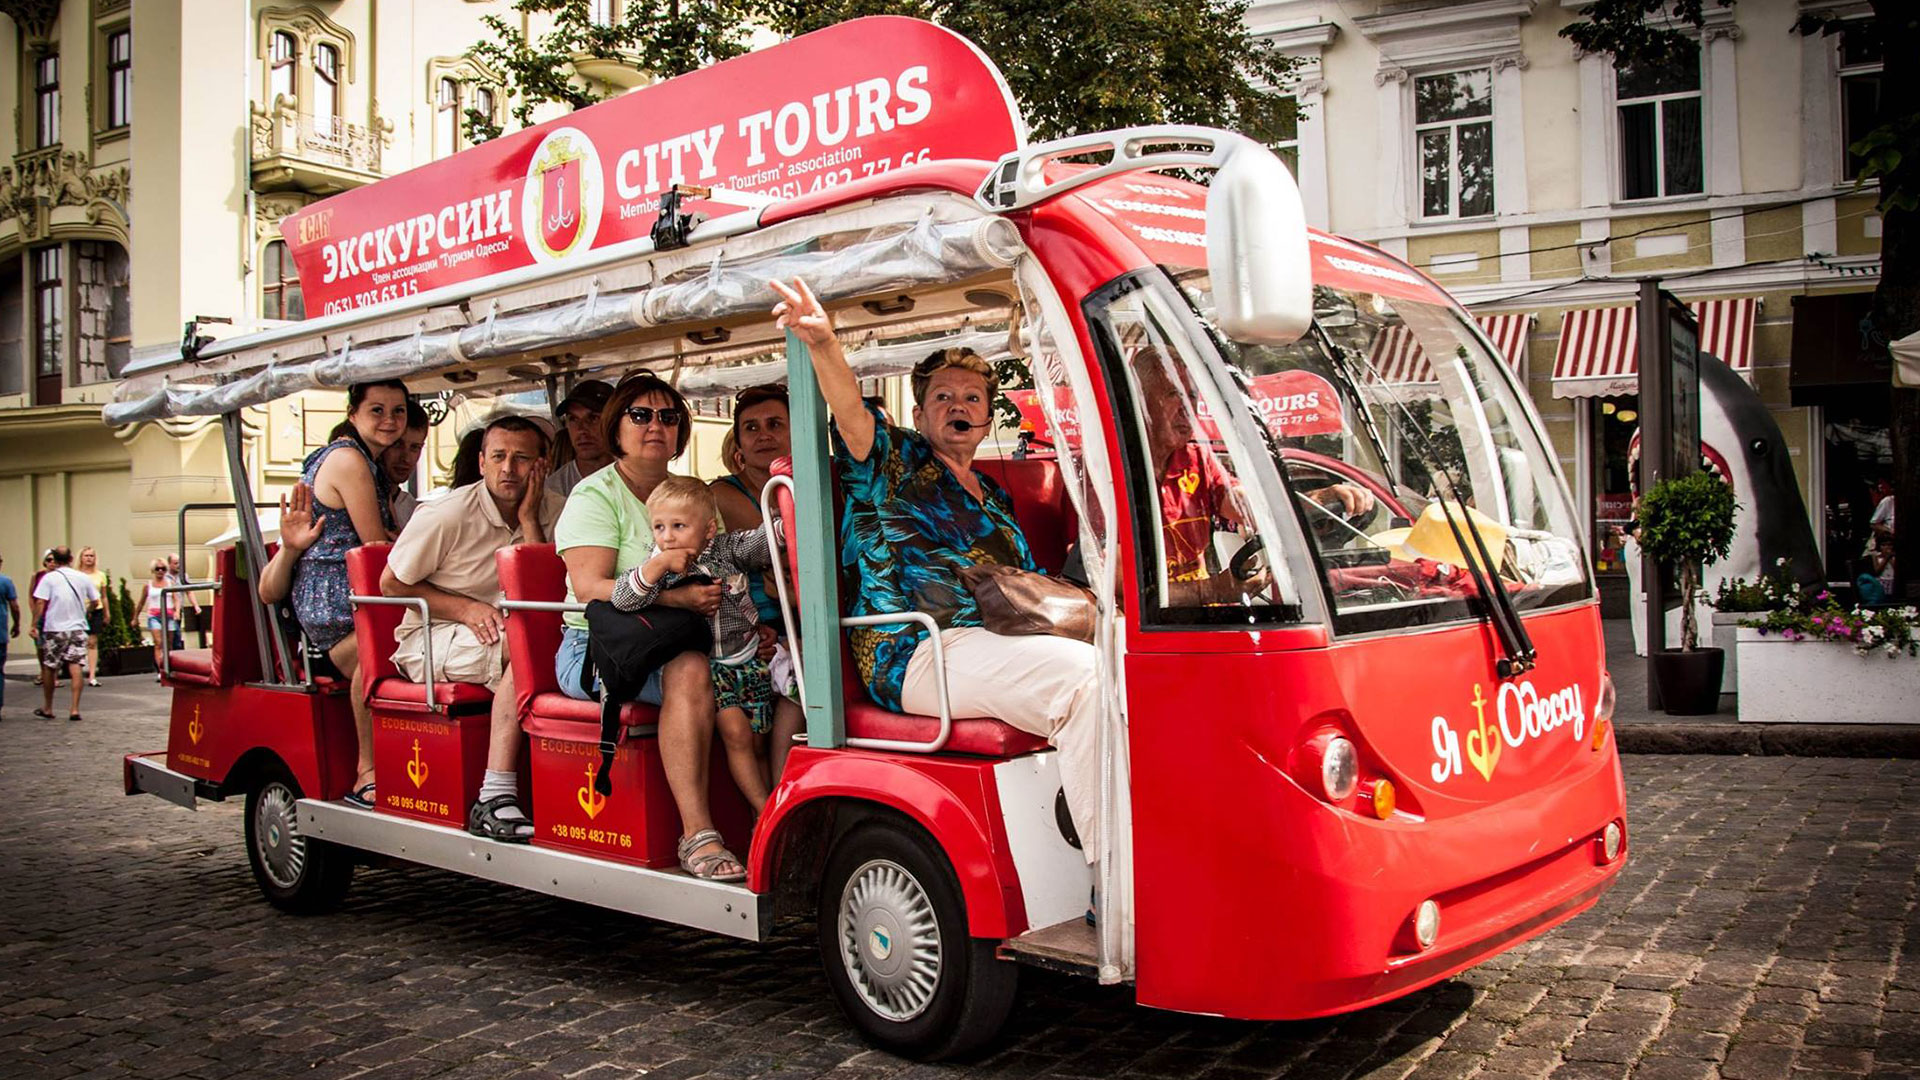 CITYTOURS BY ELECTRIC SHUTTLE BUSES